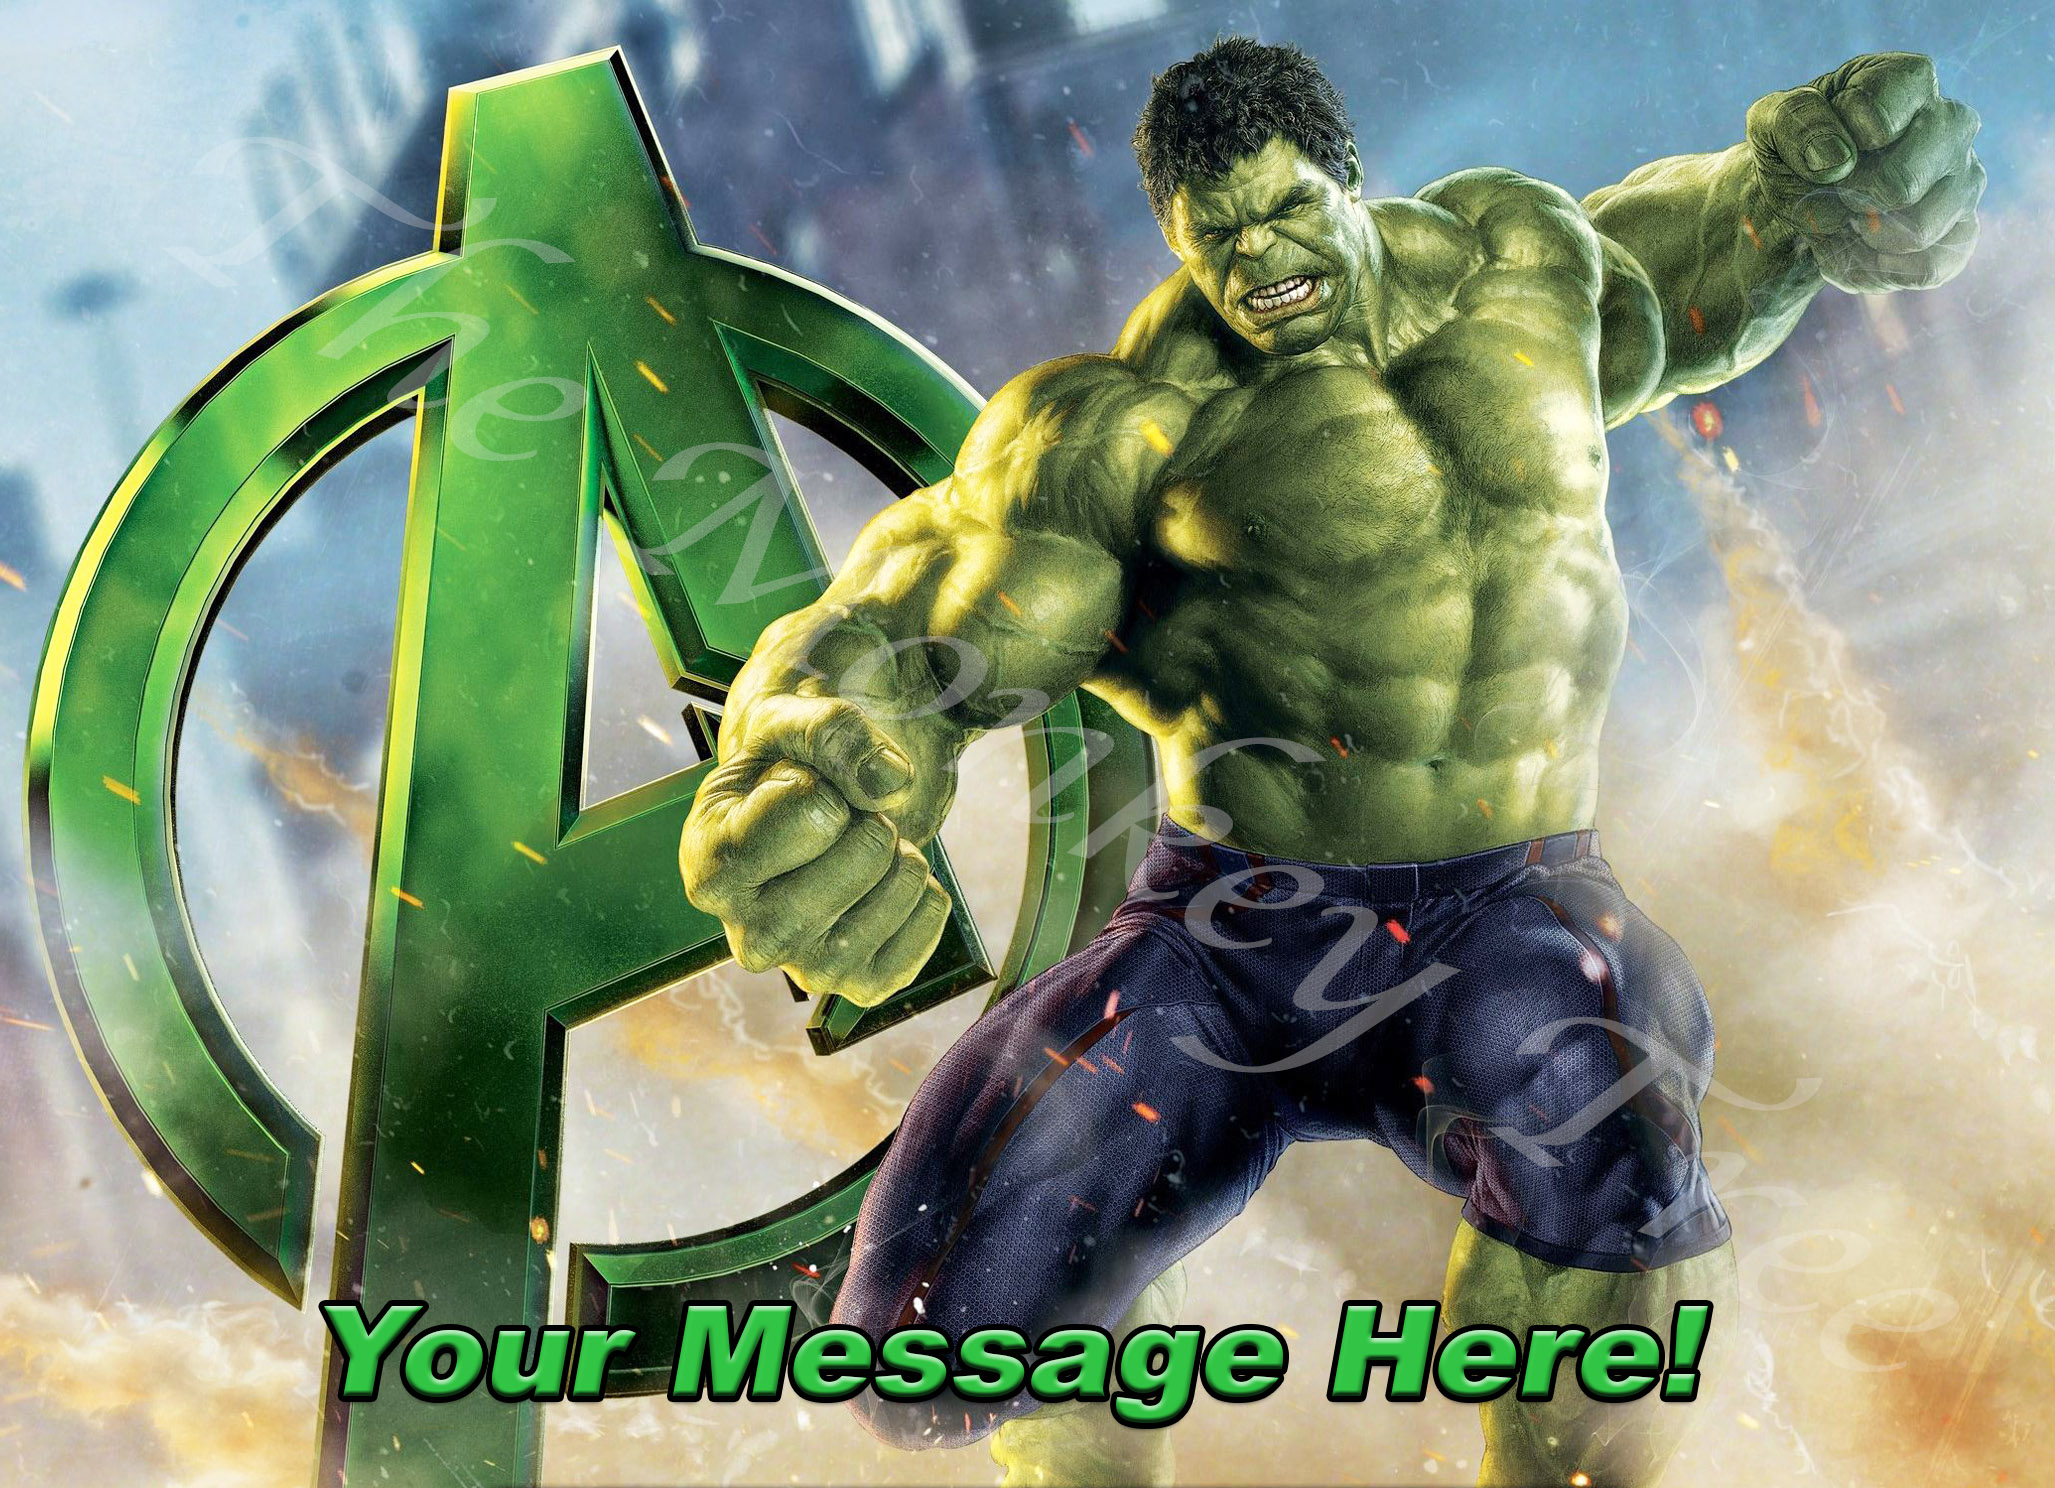 Incredible Hulk Personalised A4 Edible Image Cake Topper 2 The